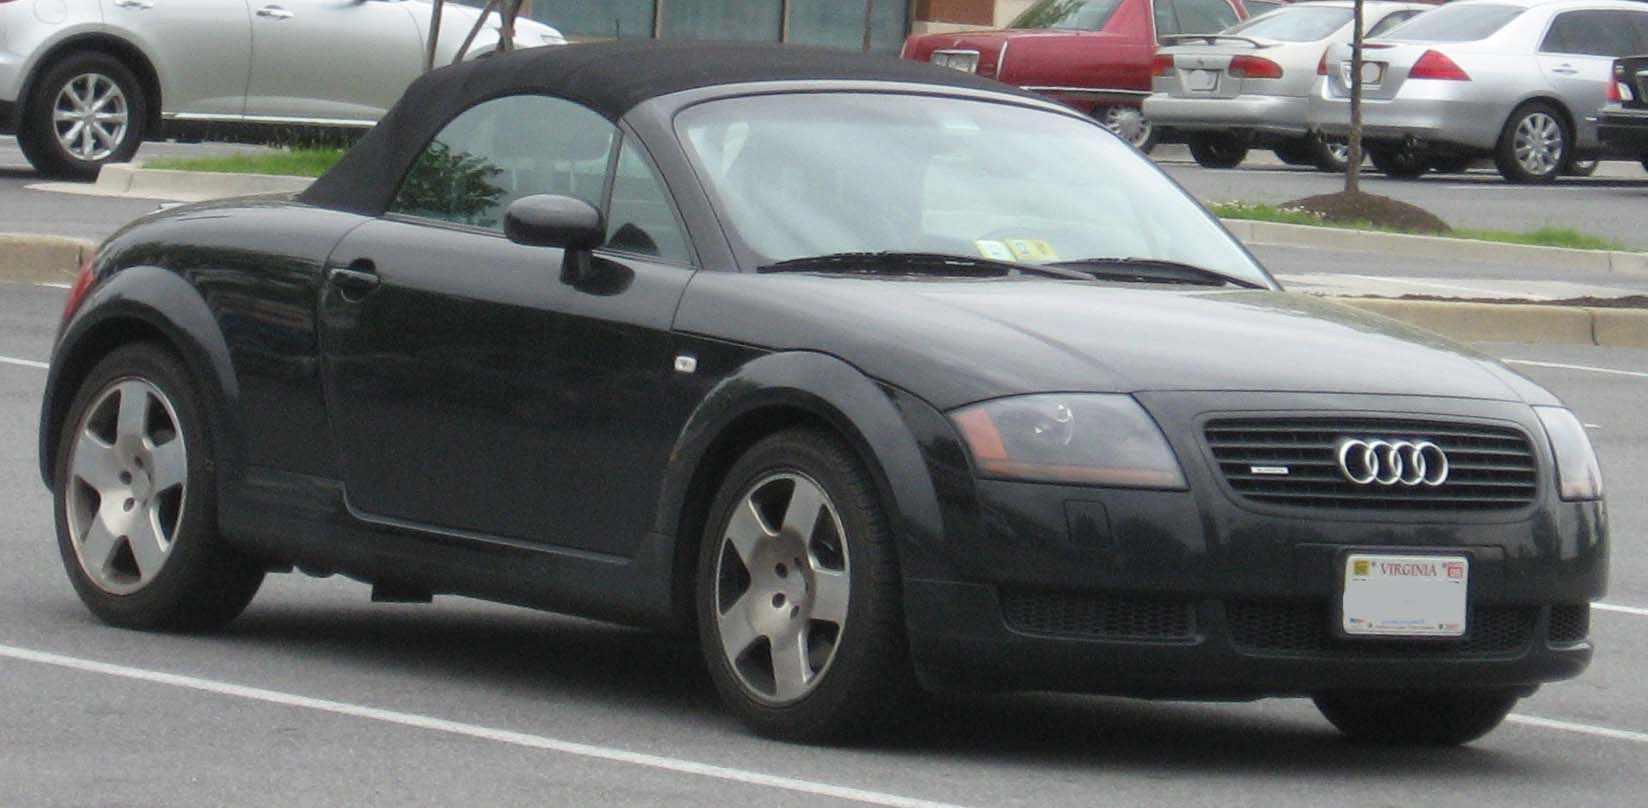 FilestAudiTTconvertiblejpg Wikimedia Commons - Audi tt convertible